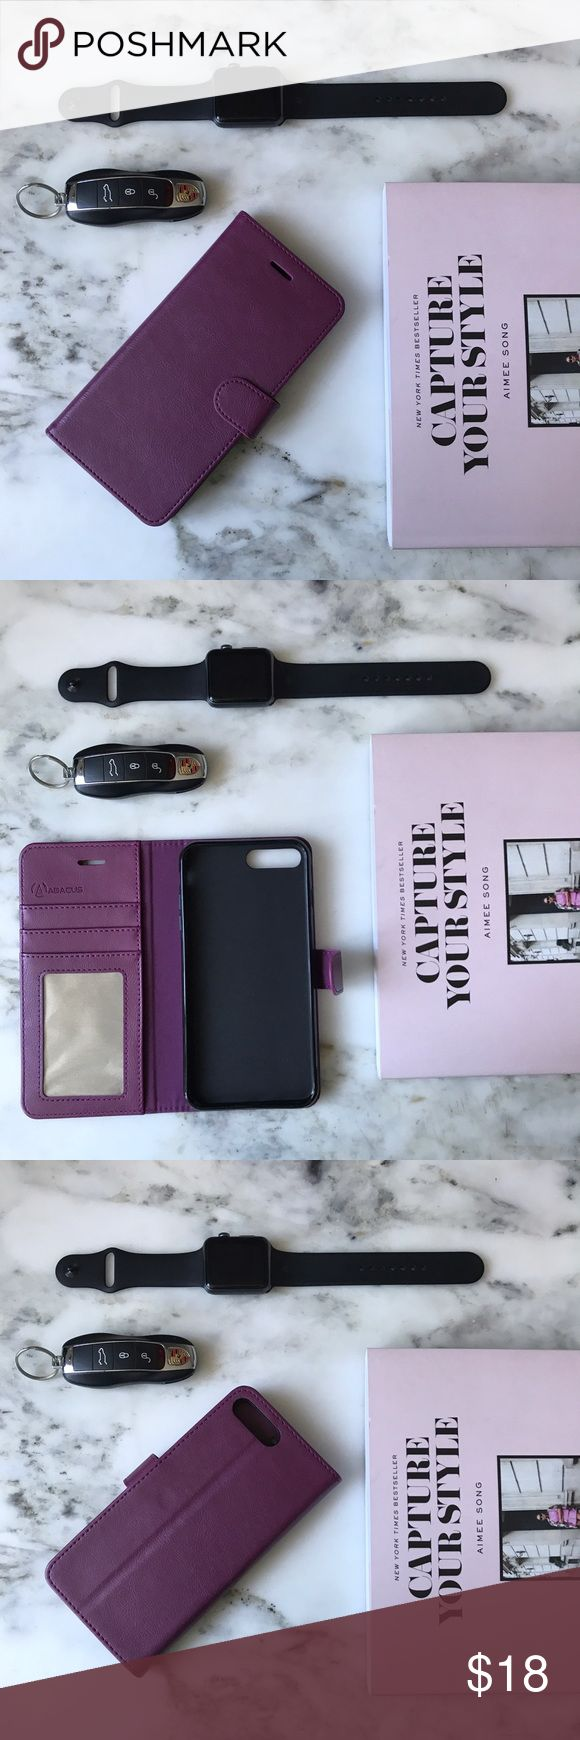 Purple iPhone 7s Wallet Phone Case ✨All sale proceeds are donated, so TY in advance. See my profile for info. ✨   New, never used iPhone case in gorgeous color. 3 card slots with visible identification card slot. Magnetic closure. Accessories Phone Cases